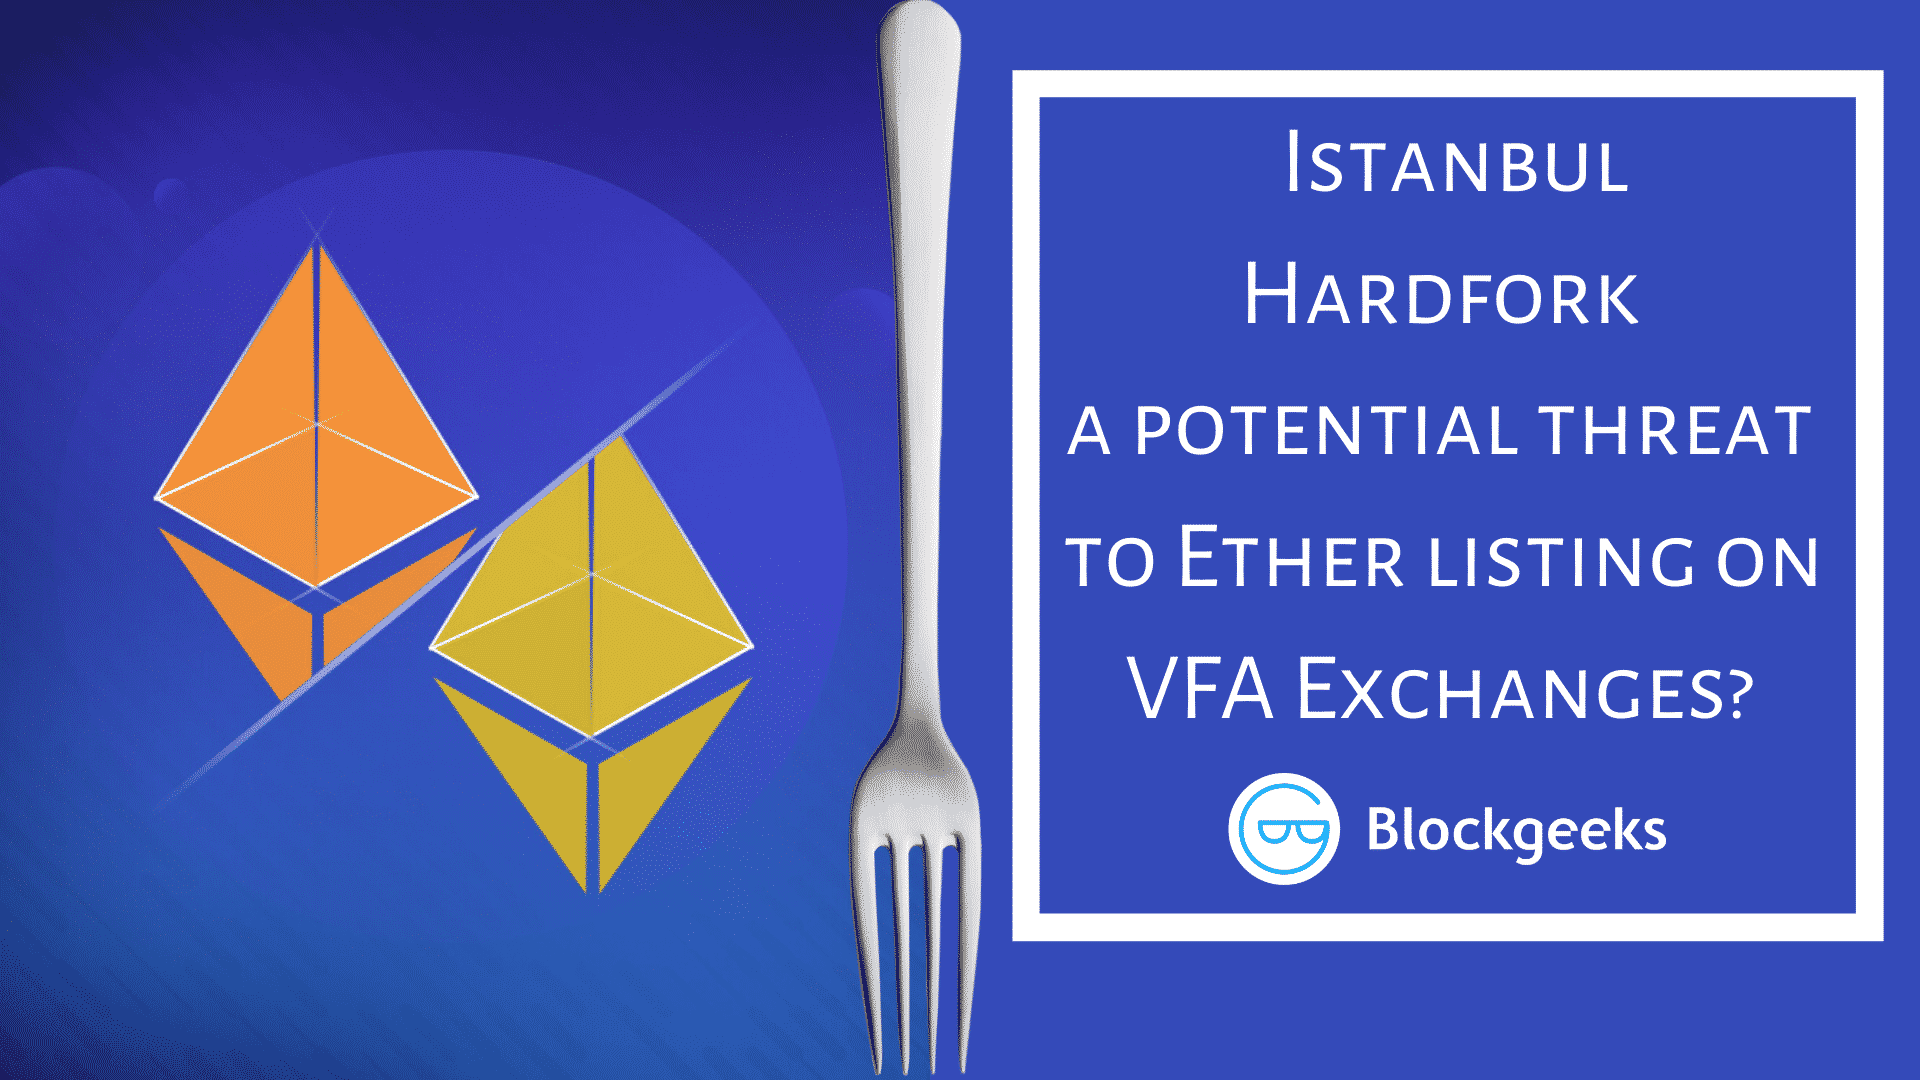 Is the Istanbul Hardfork a potential threat to Ether listing on VFA Exchanges?